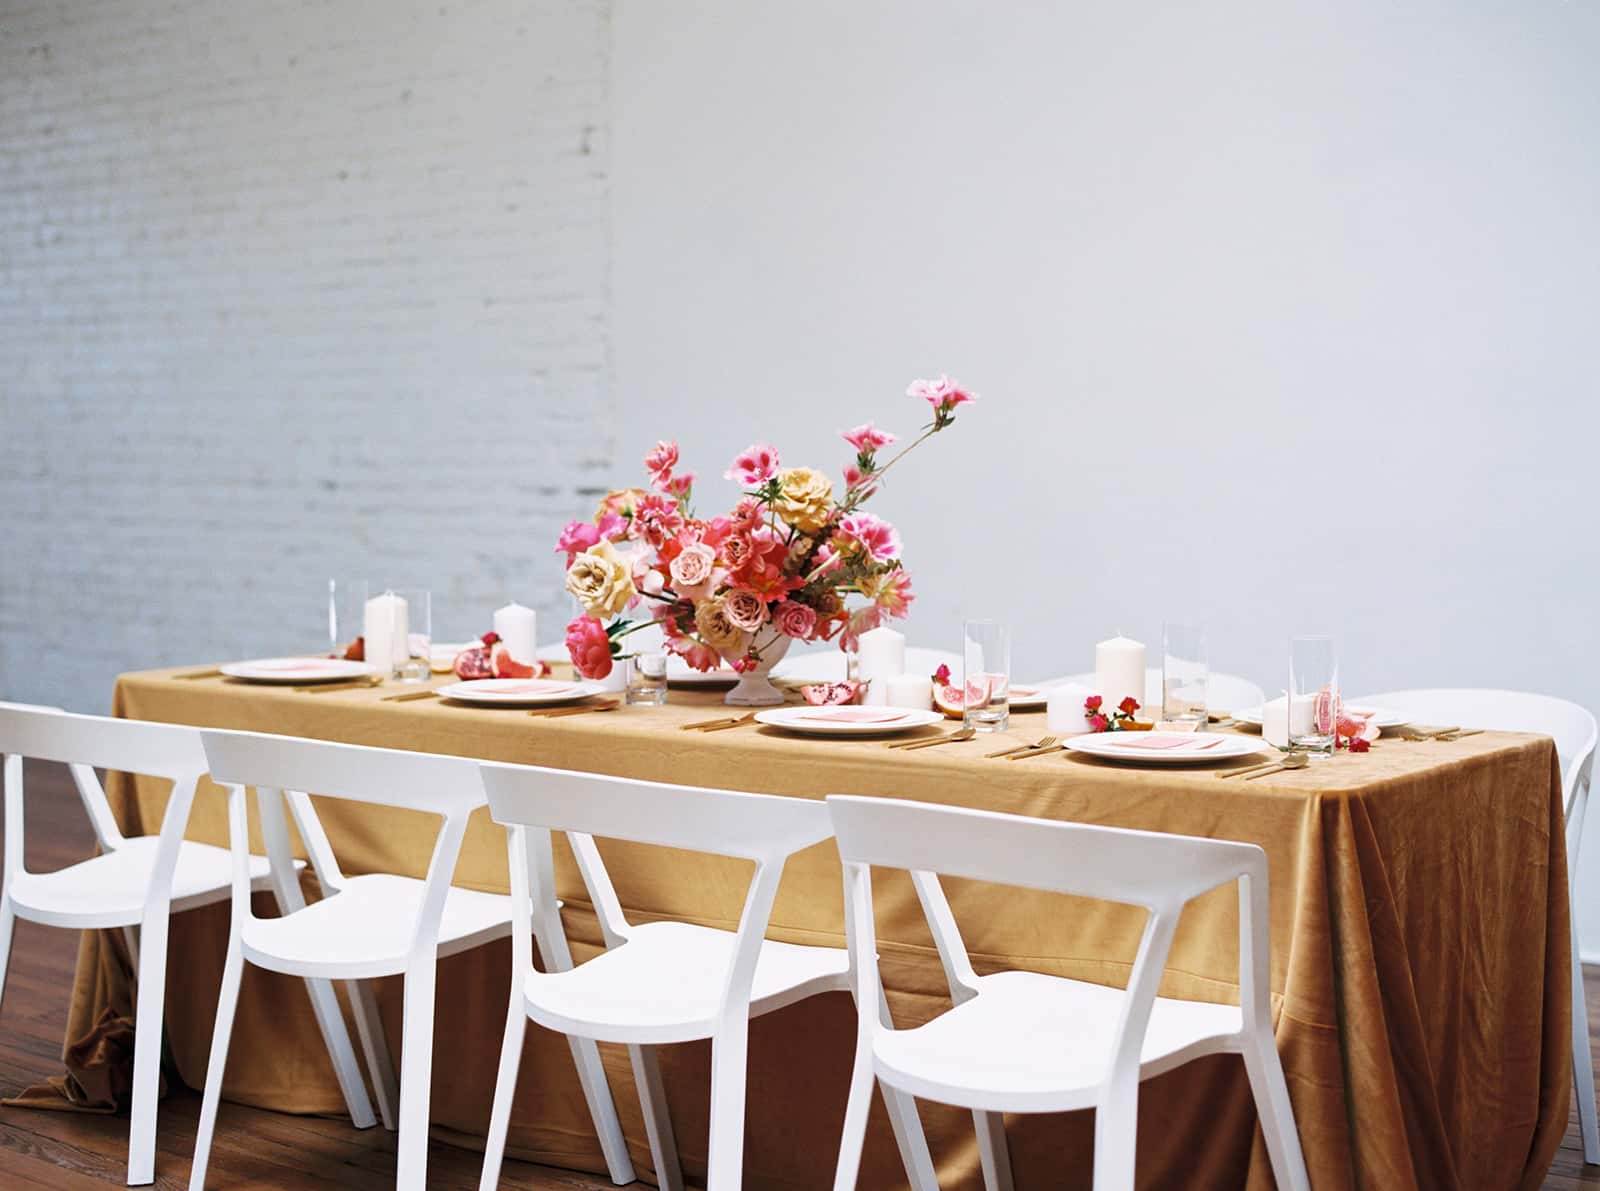 Contemporary wedding styling and floral design by Color Theory Collective